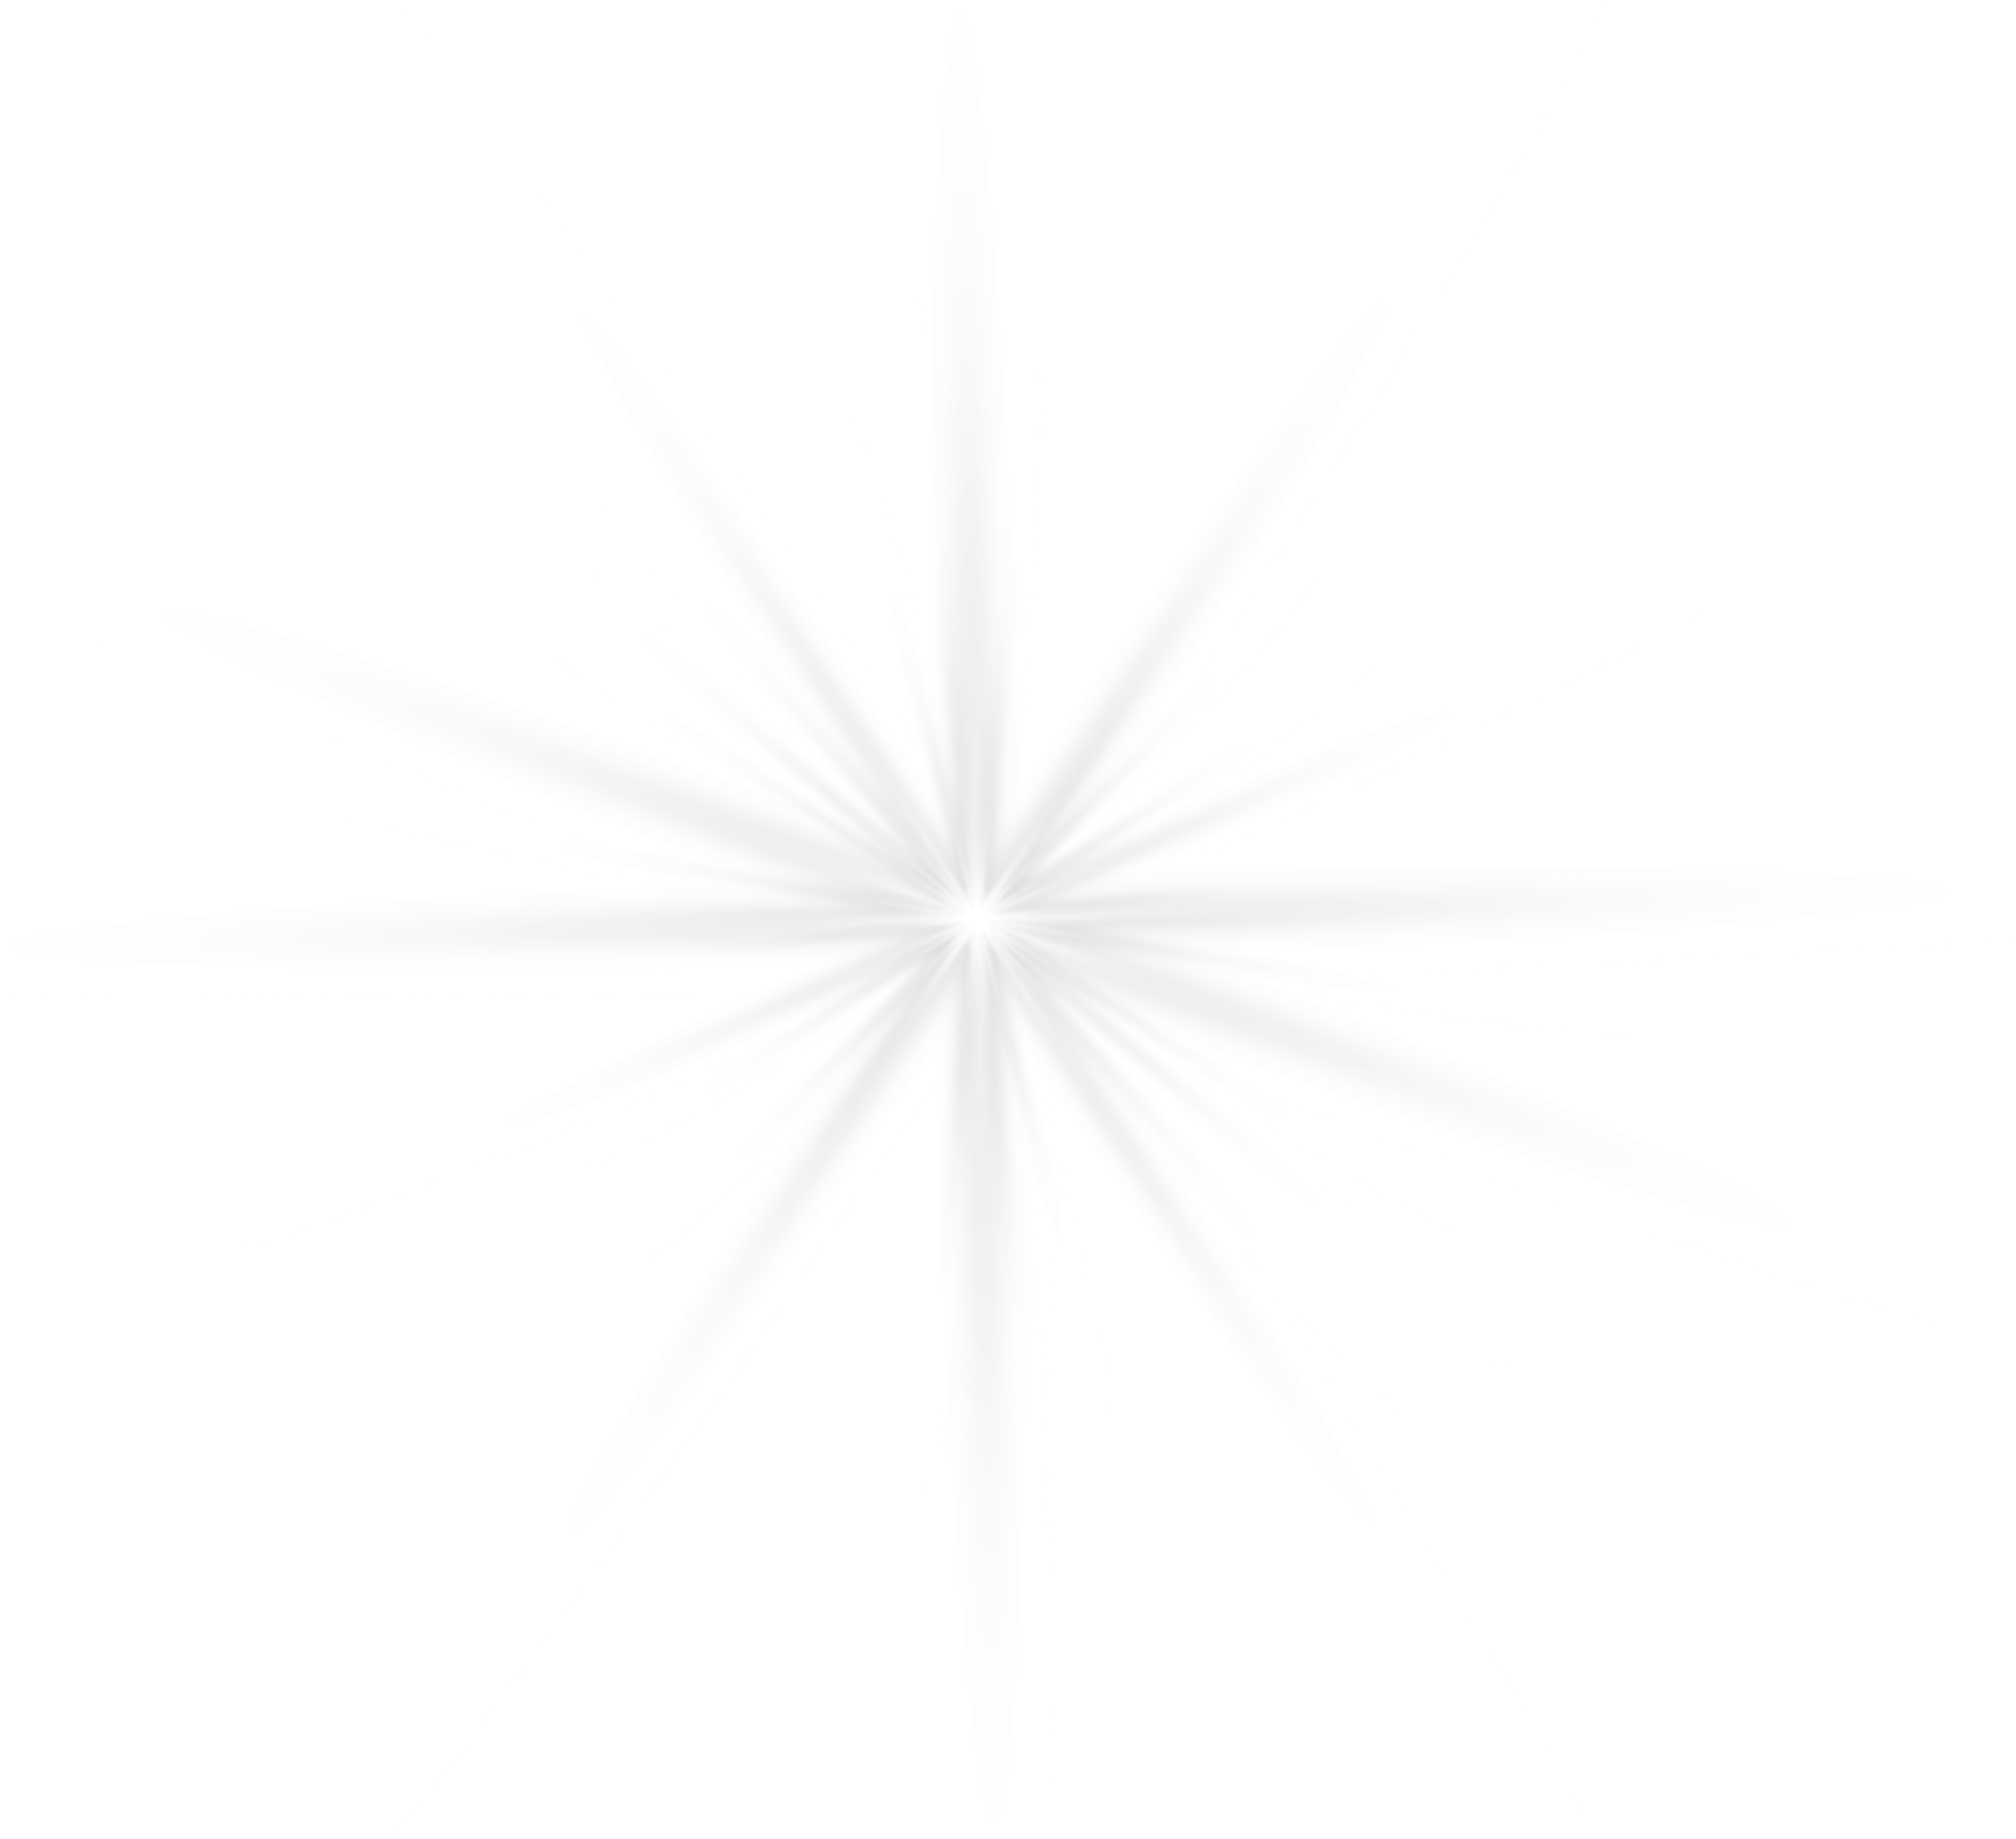 White Star Unlimited Download Cleanpng Com Nautical Star Tattoos Star Tattoos Nautical Star